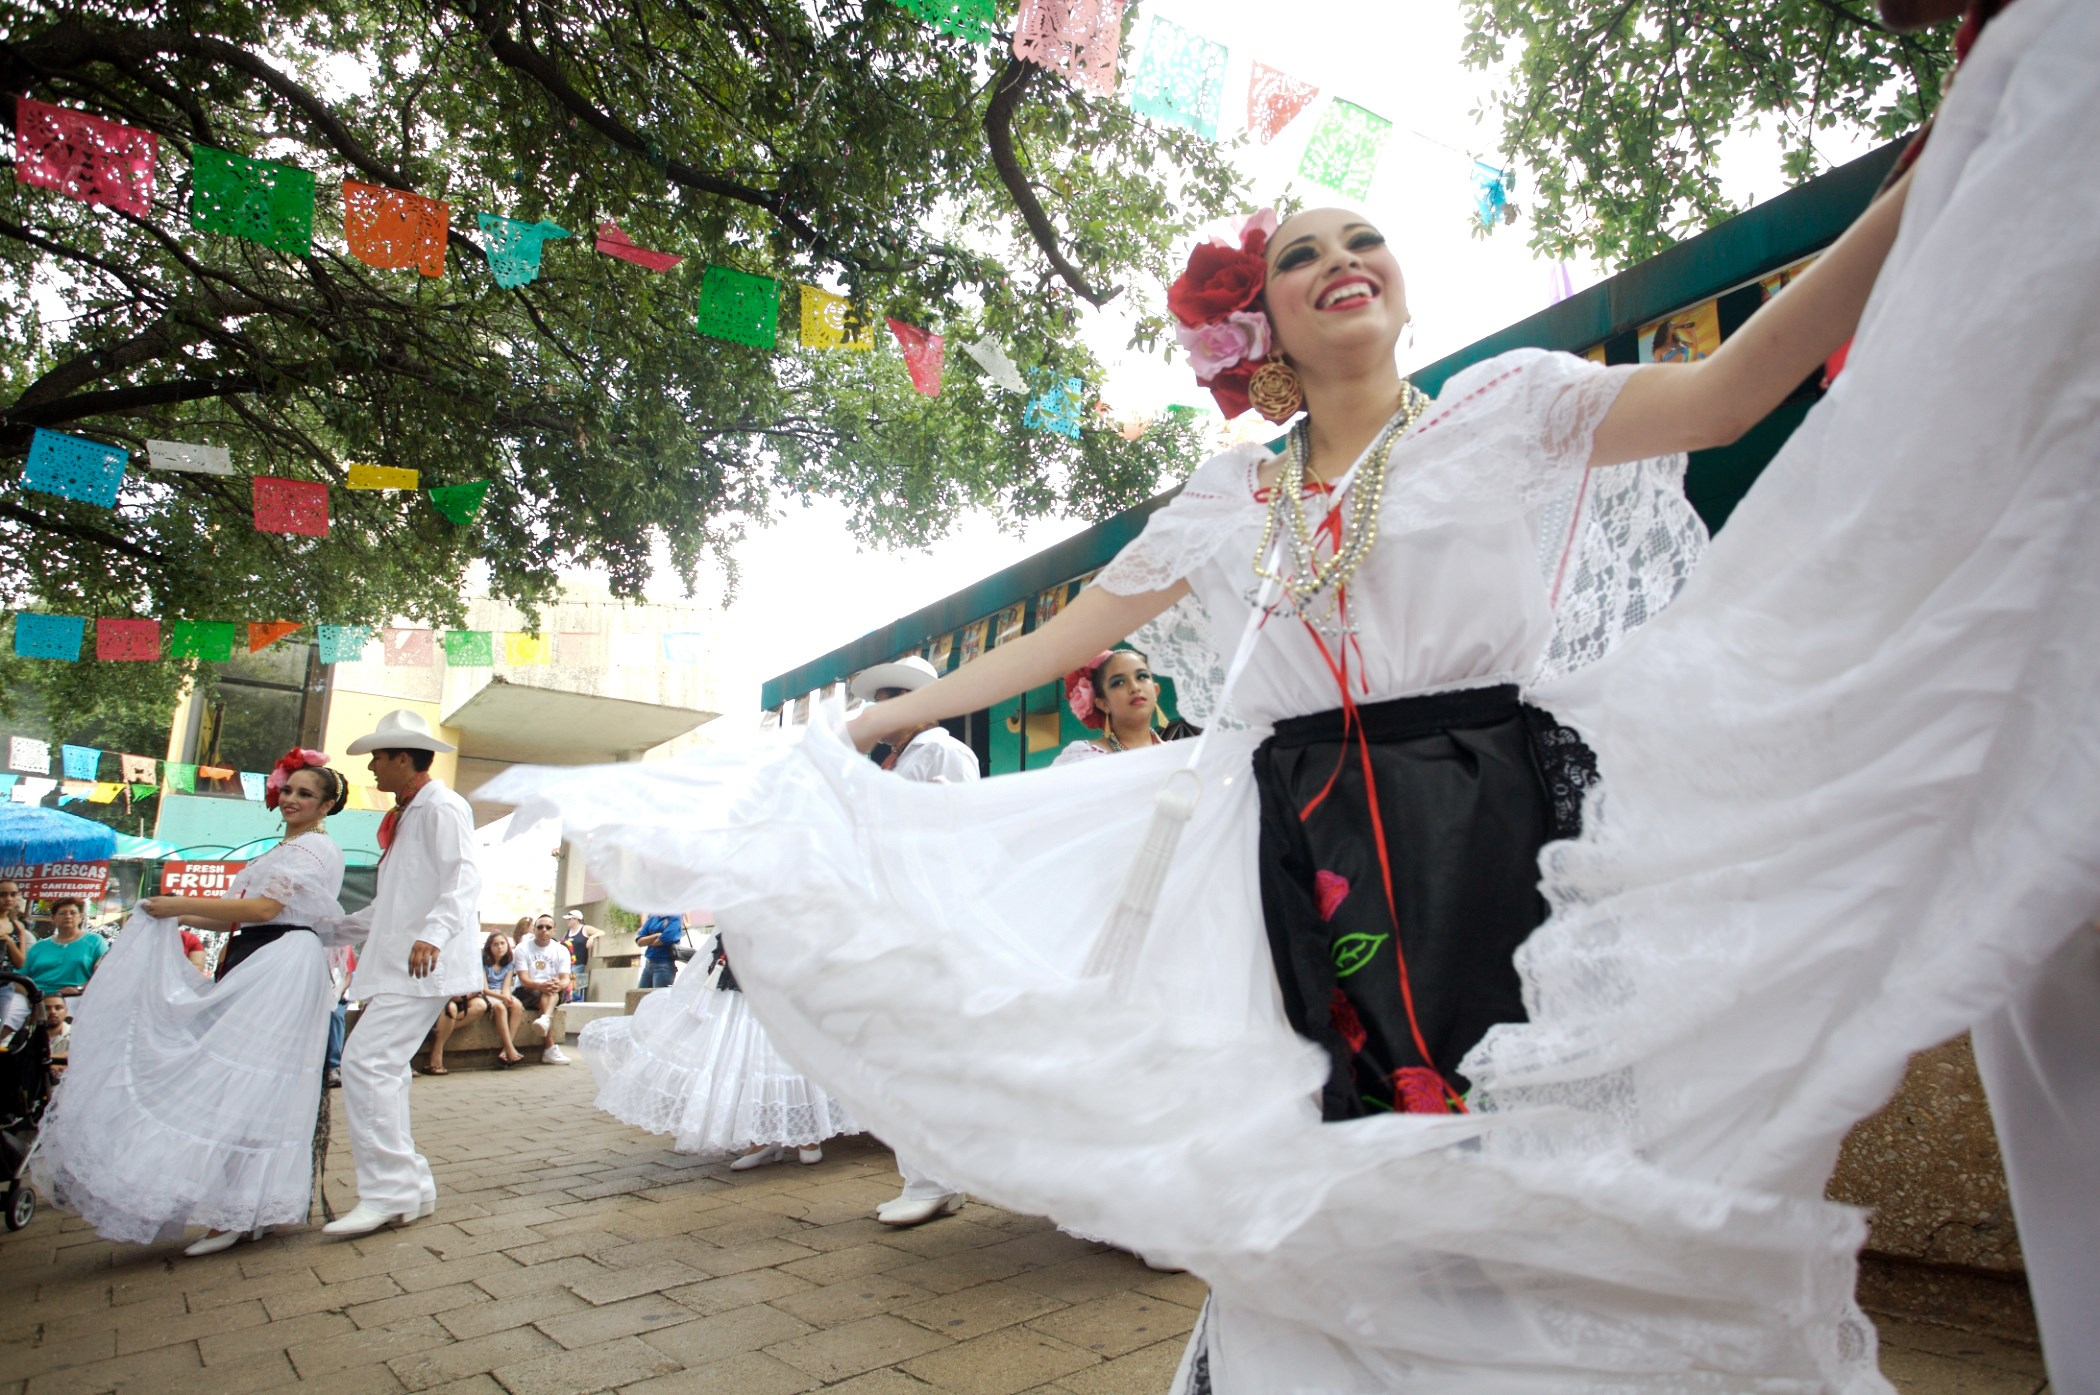 Folklorico at Market Square